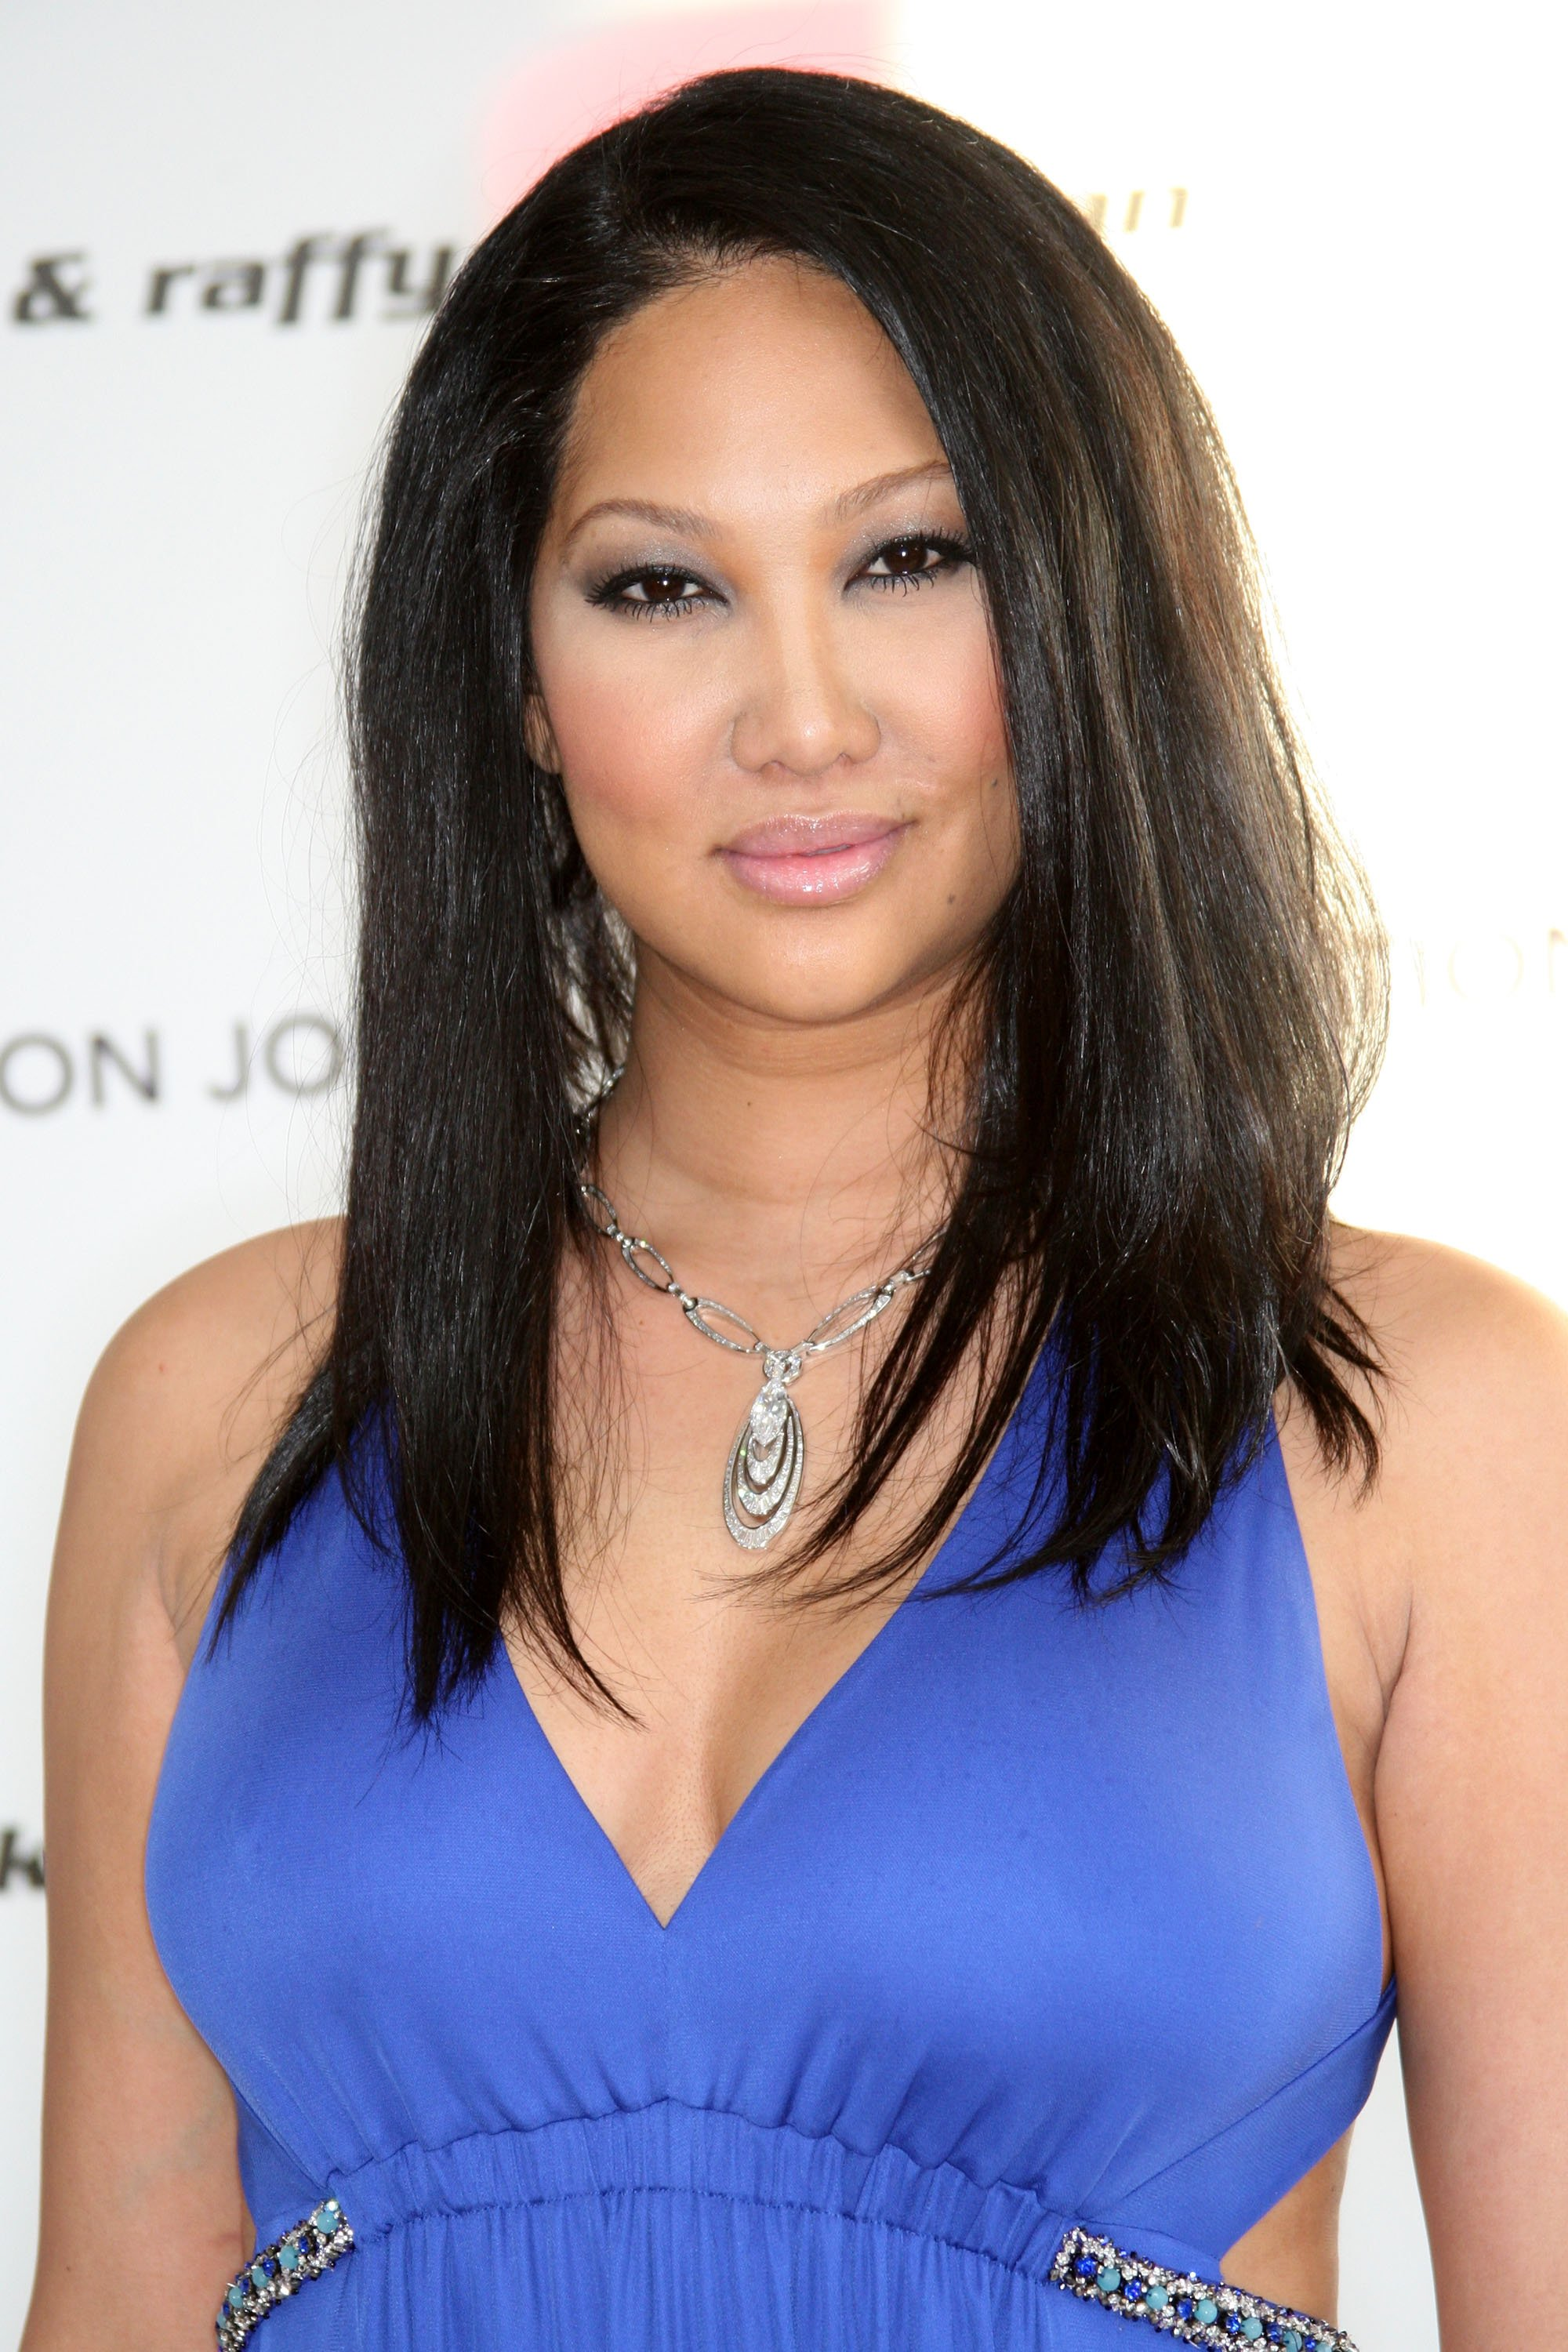 Kimora Lee arrives at the 18th annual Elton John AIDS Foundation Oscar Party held at Pacific Design Center on March 7, 2010 in West Hollywood, California | Photo: Getty Images